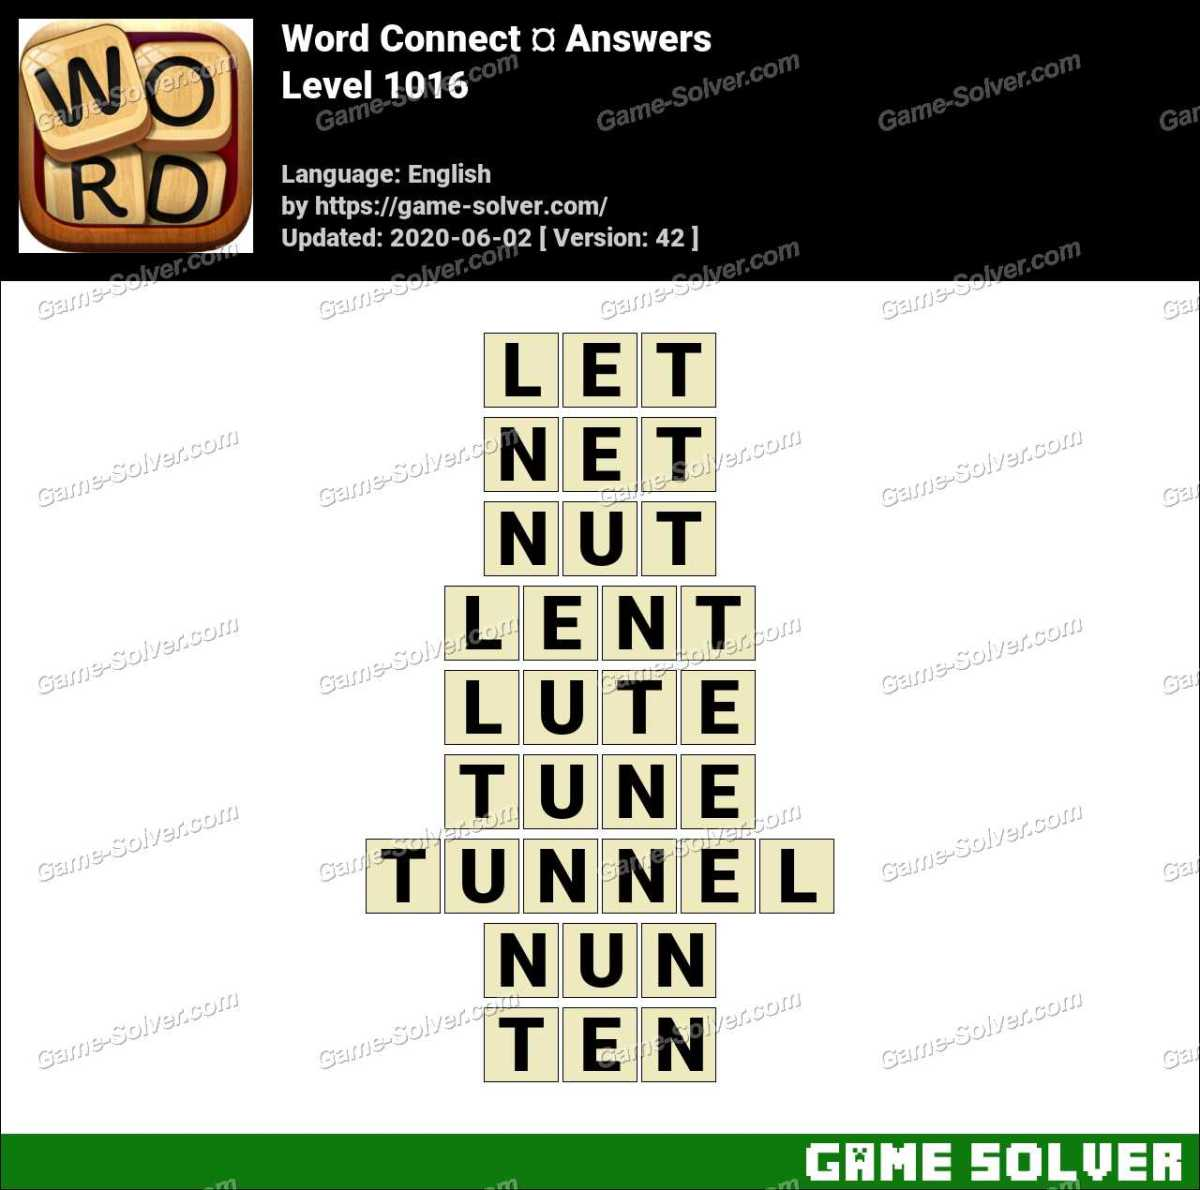 Word Connect Level 1016 Answers